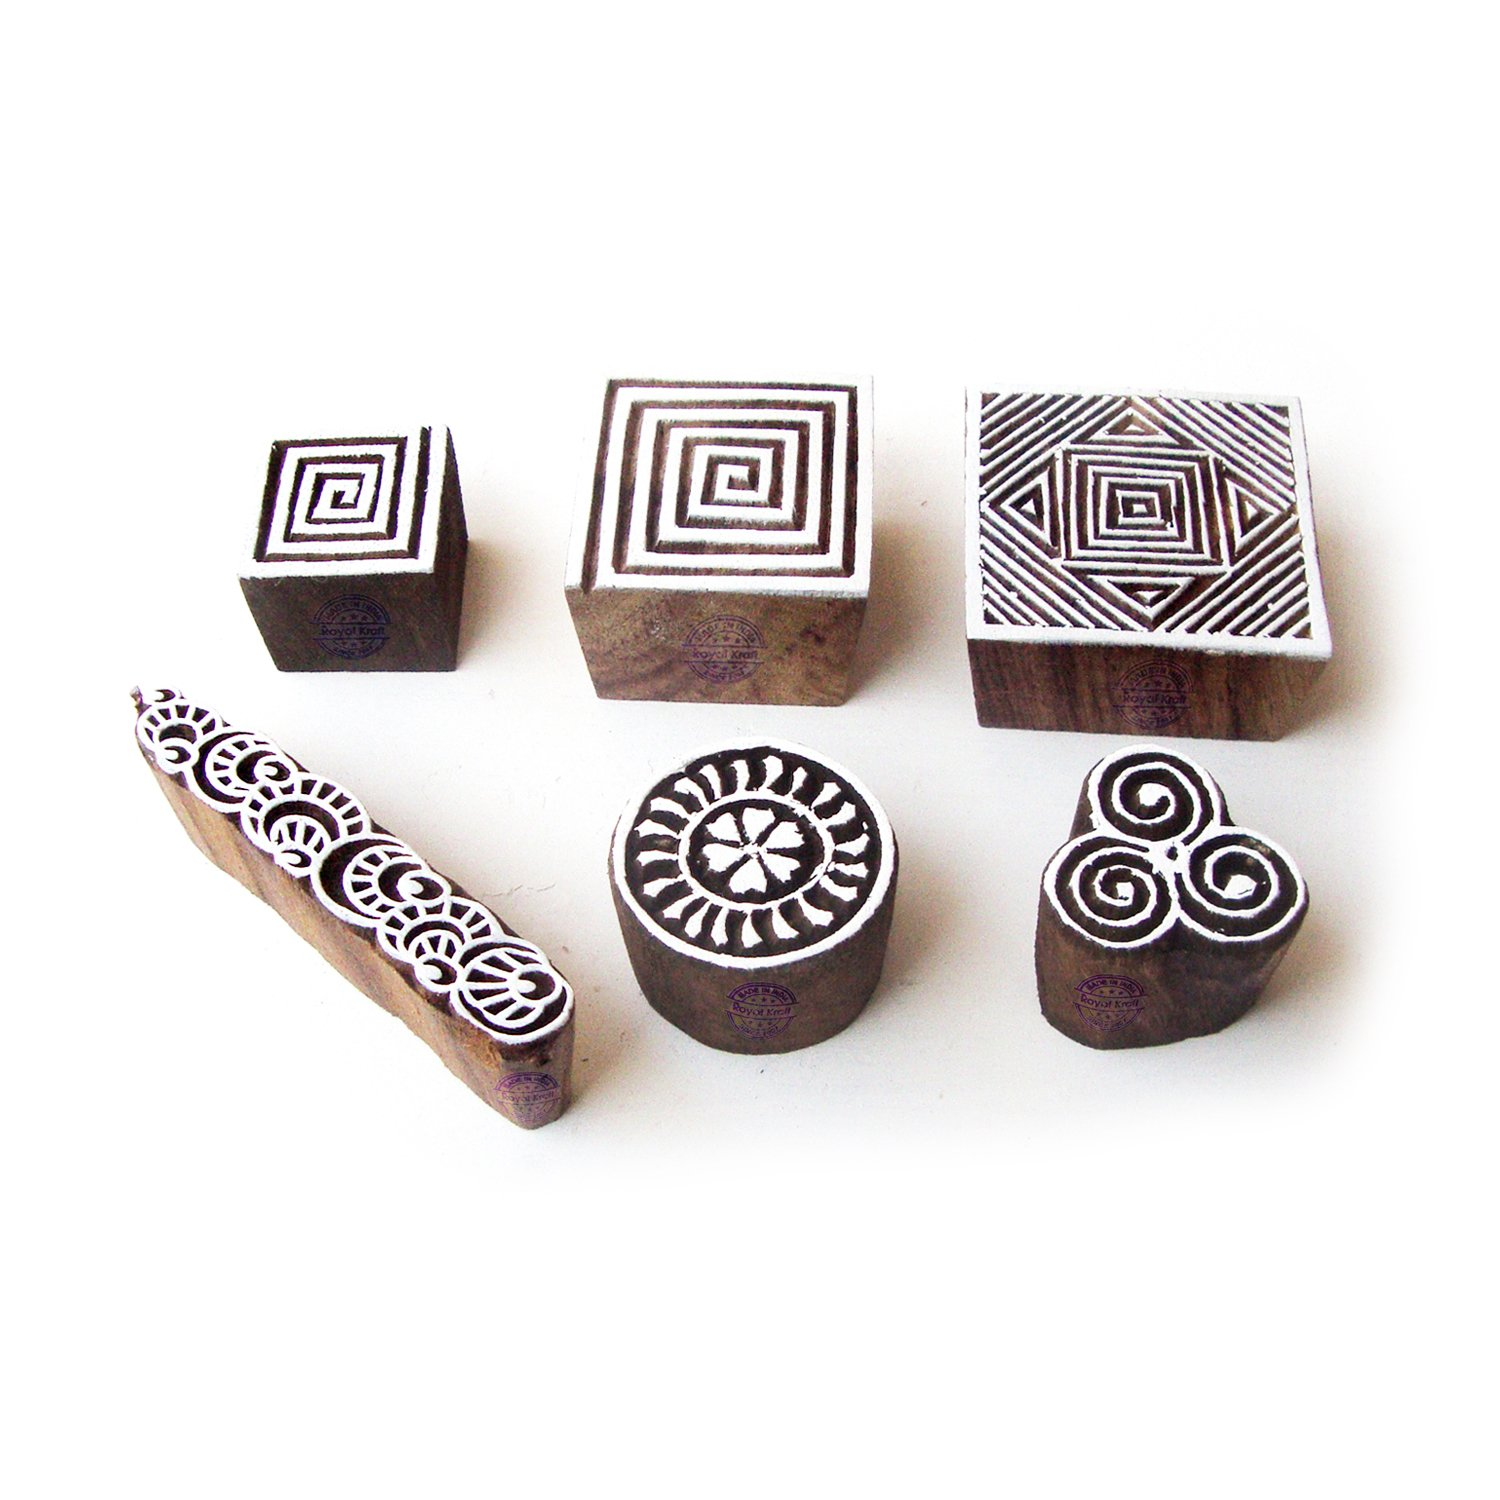 Royal Kraft Spiral and Geometric Hand Carved Pattern Wooden Blocks for Printing (Set of 6) Htag0700